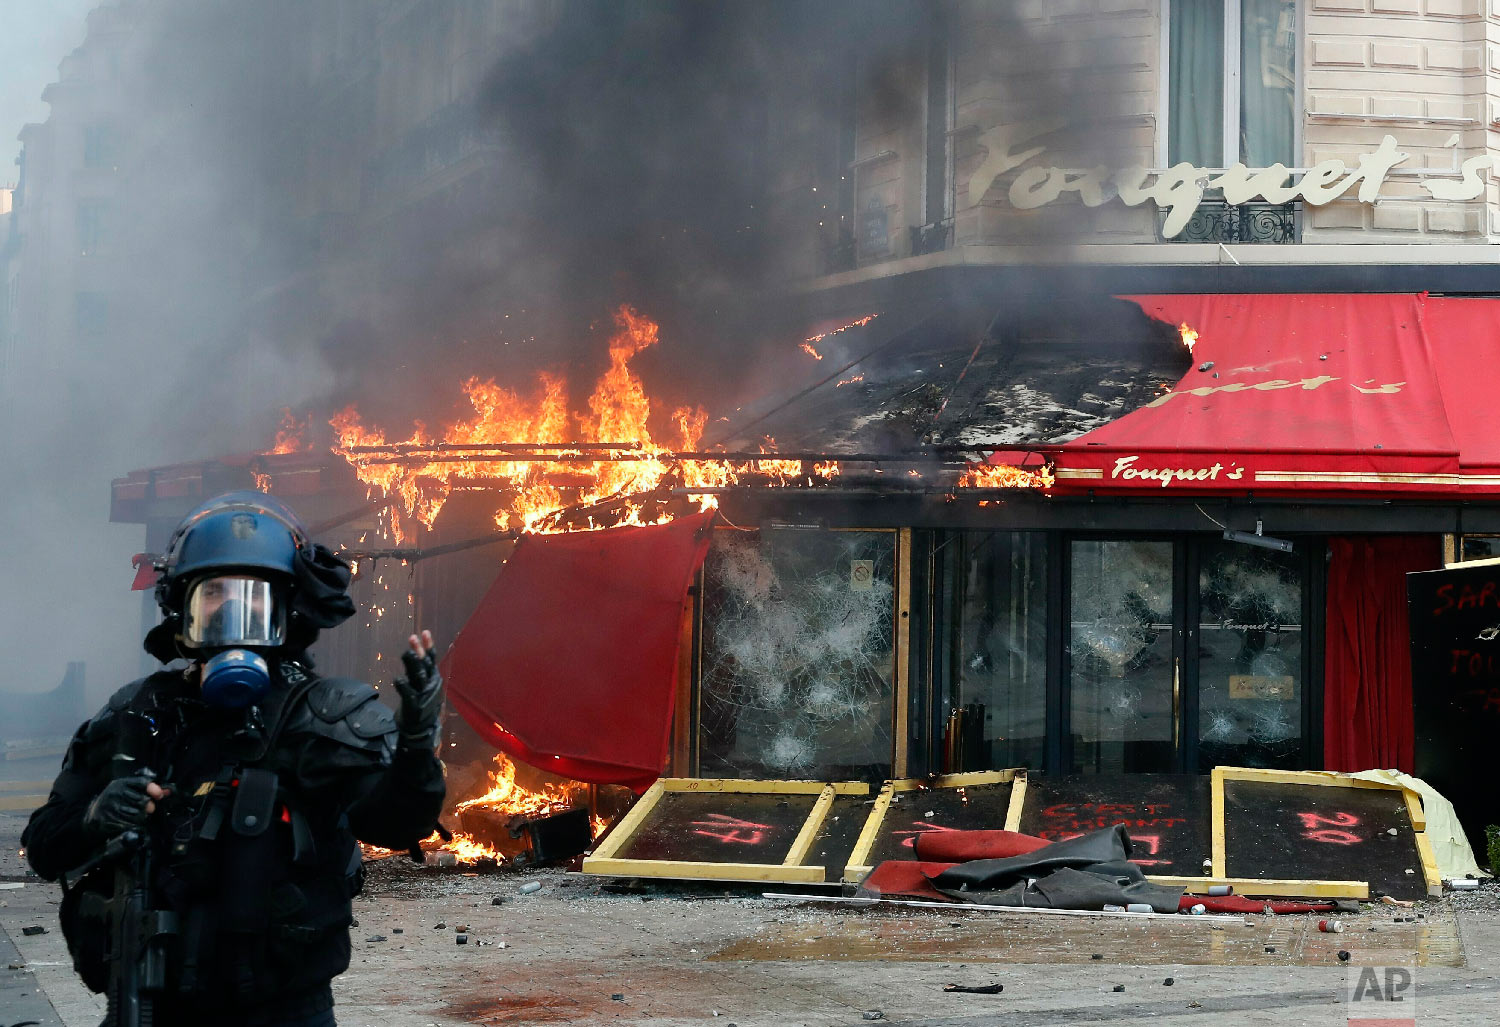 Paris famed restaurant Fouquet's burns on the Champs Elysees avenue during a yellow vests demonstration, March 16, 2019 in Paris. (AP Photo/Christophe Ena)